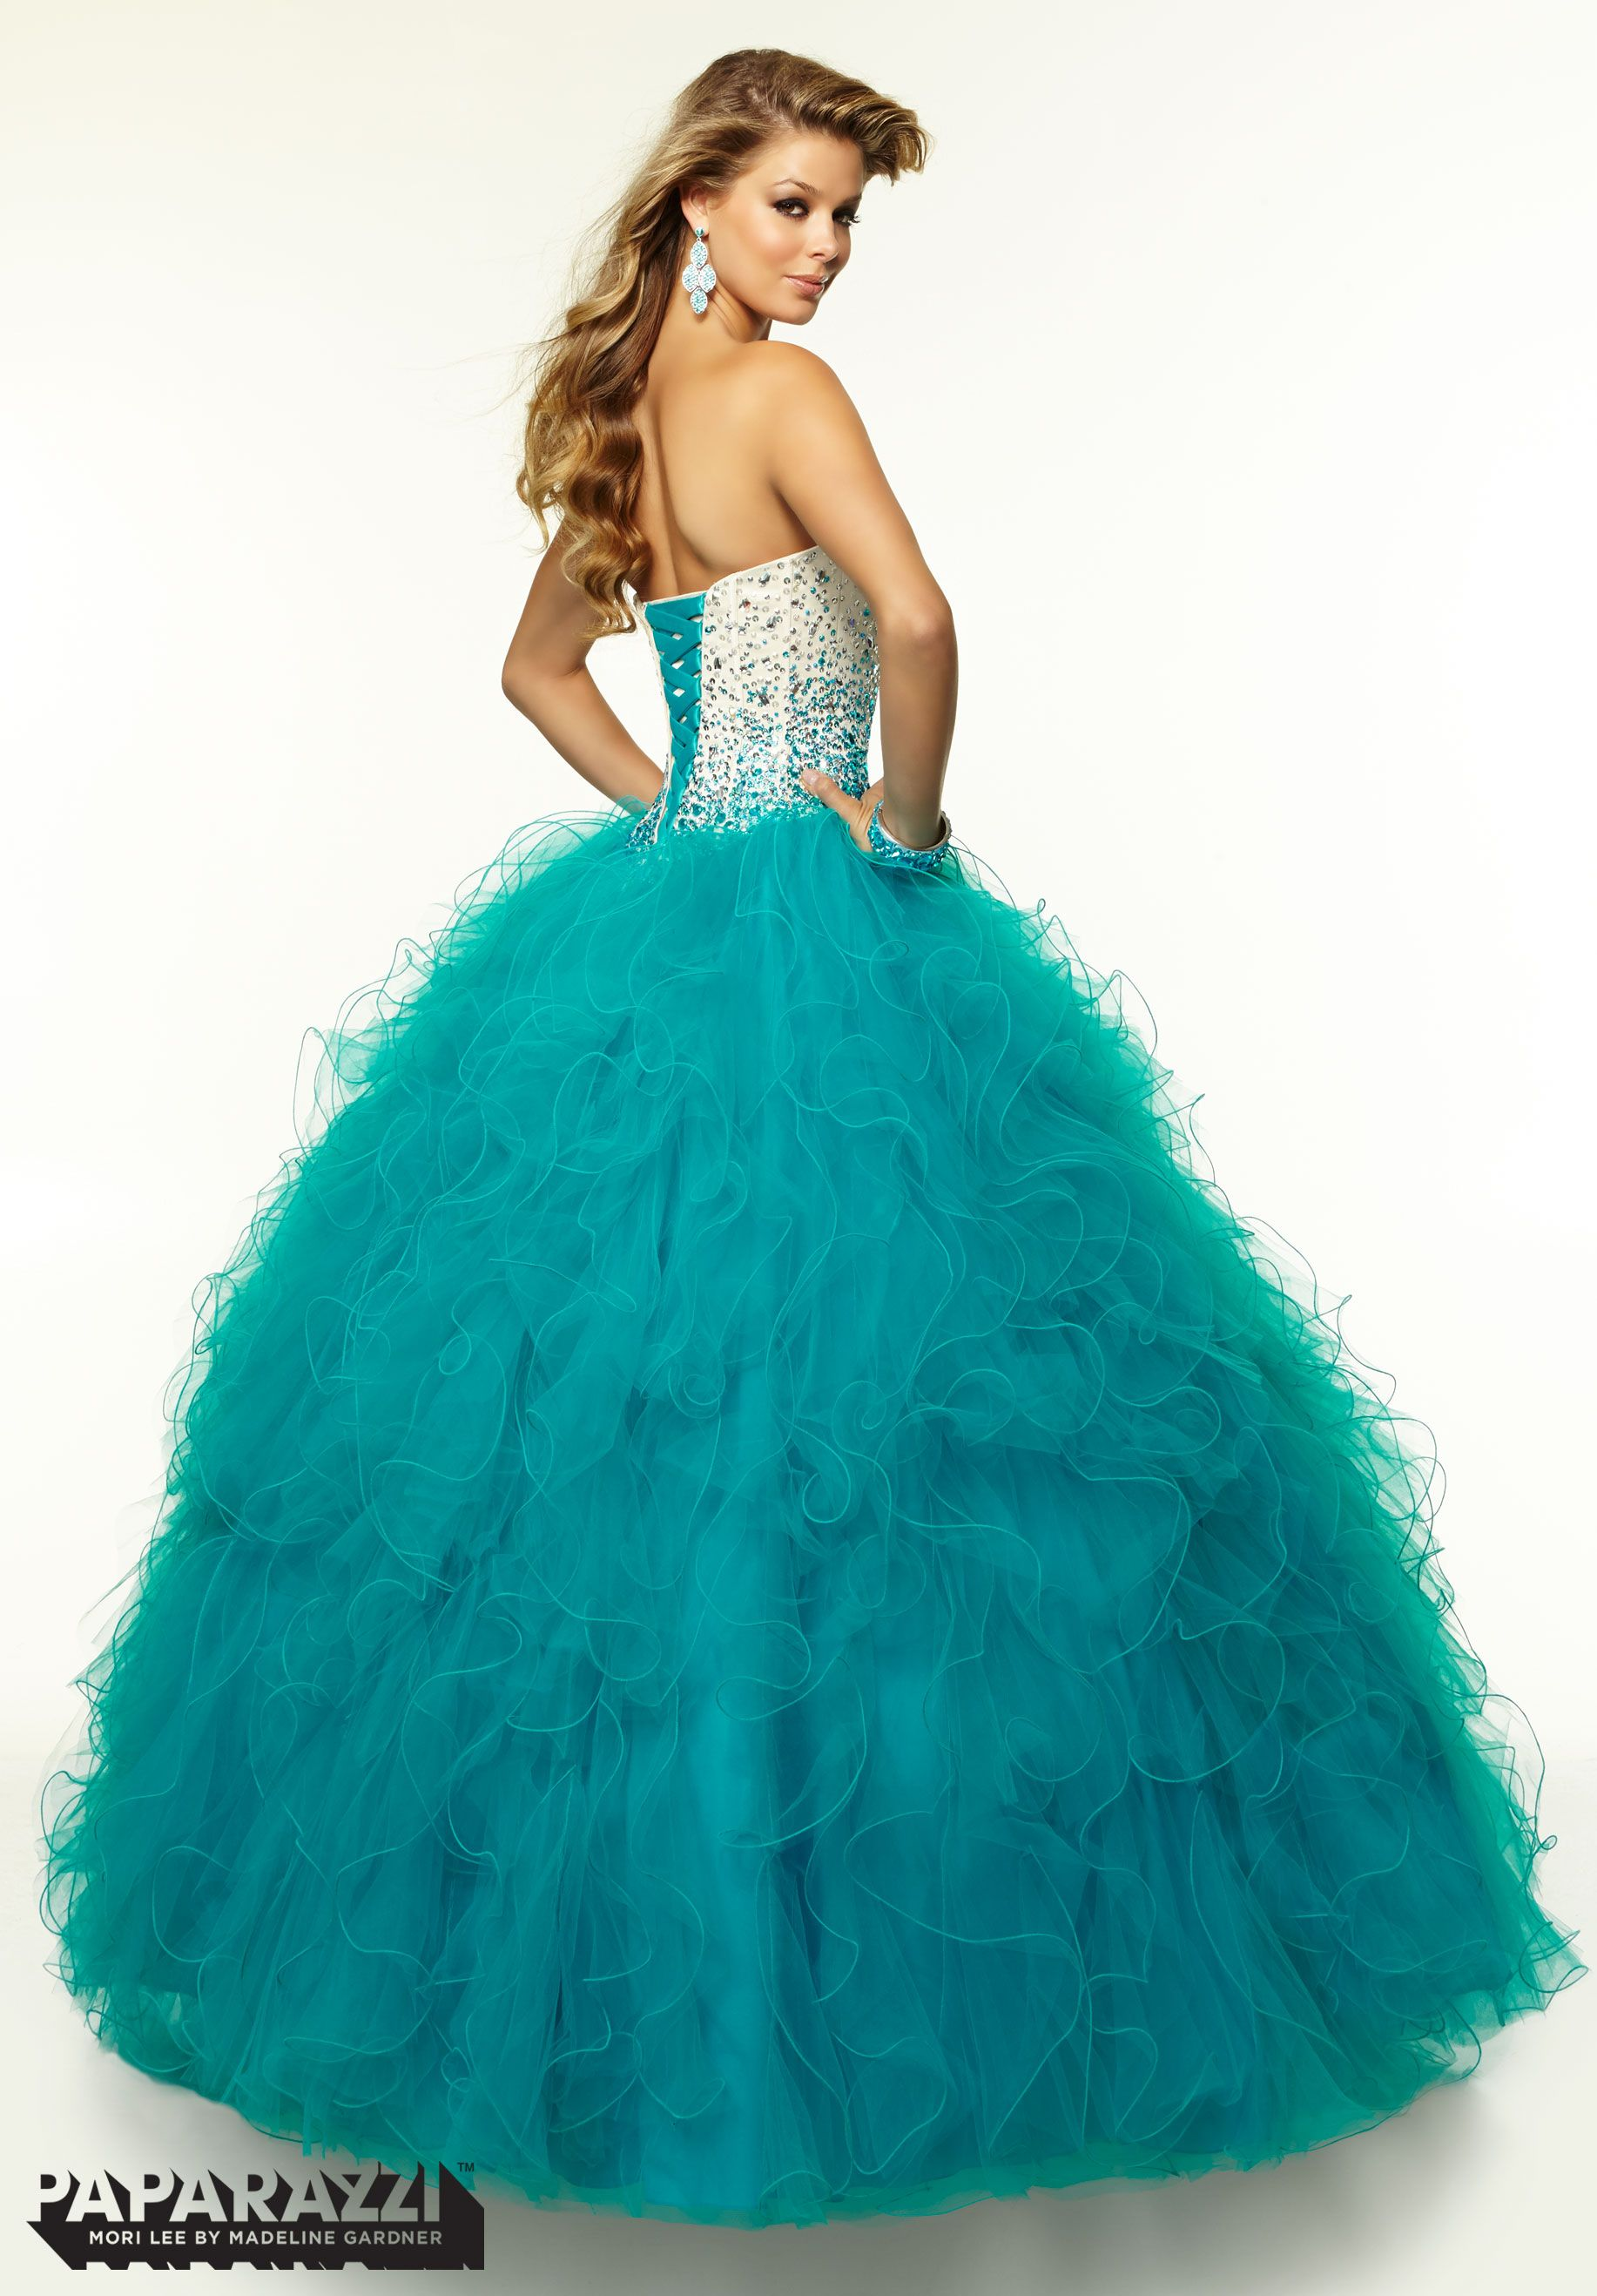 97086 Prom Dress / Gown Satin Ombre Beaded Bodice with Ruffled Tulle ...